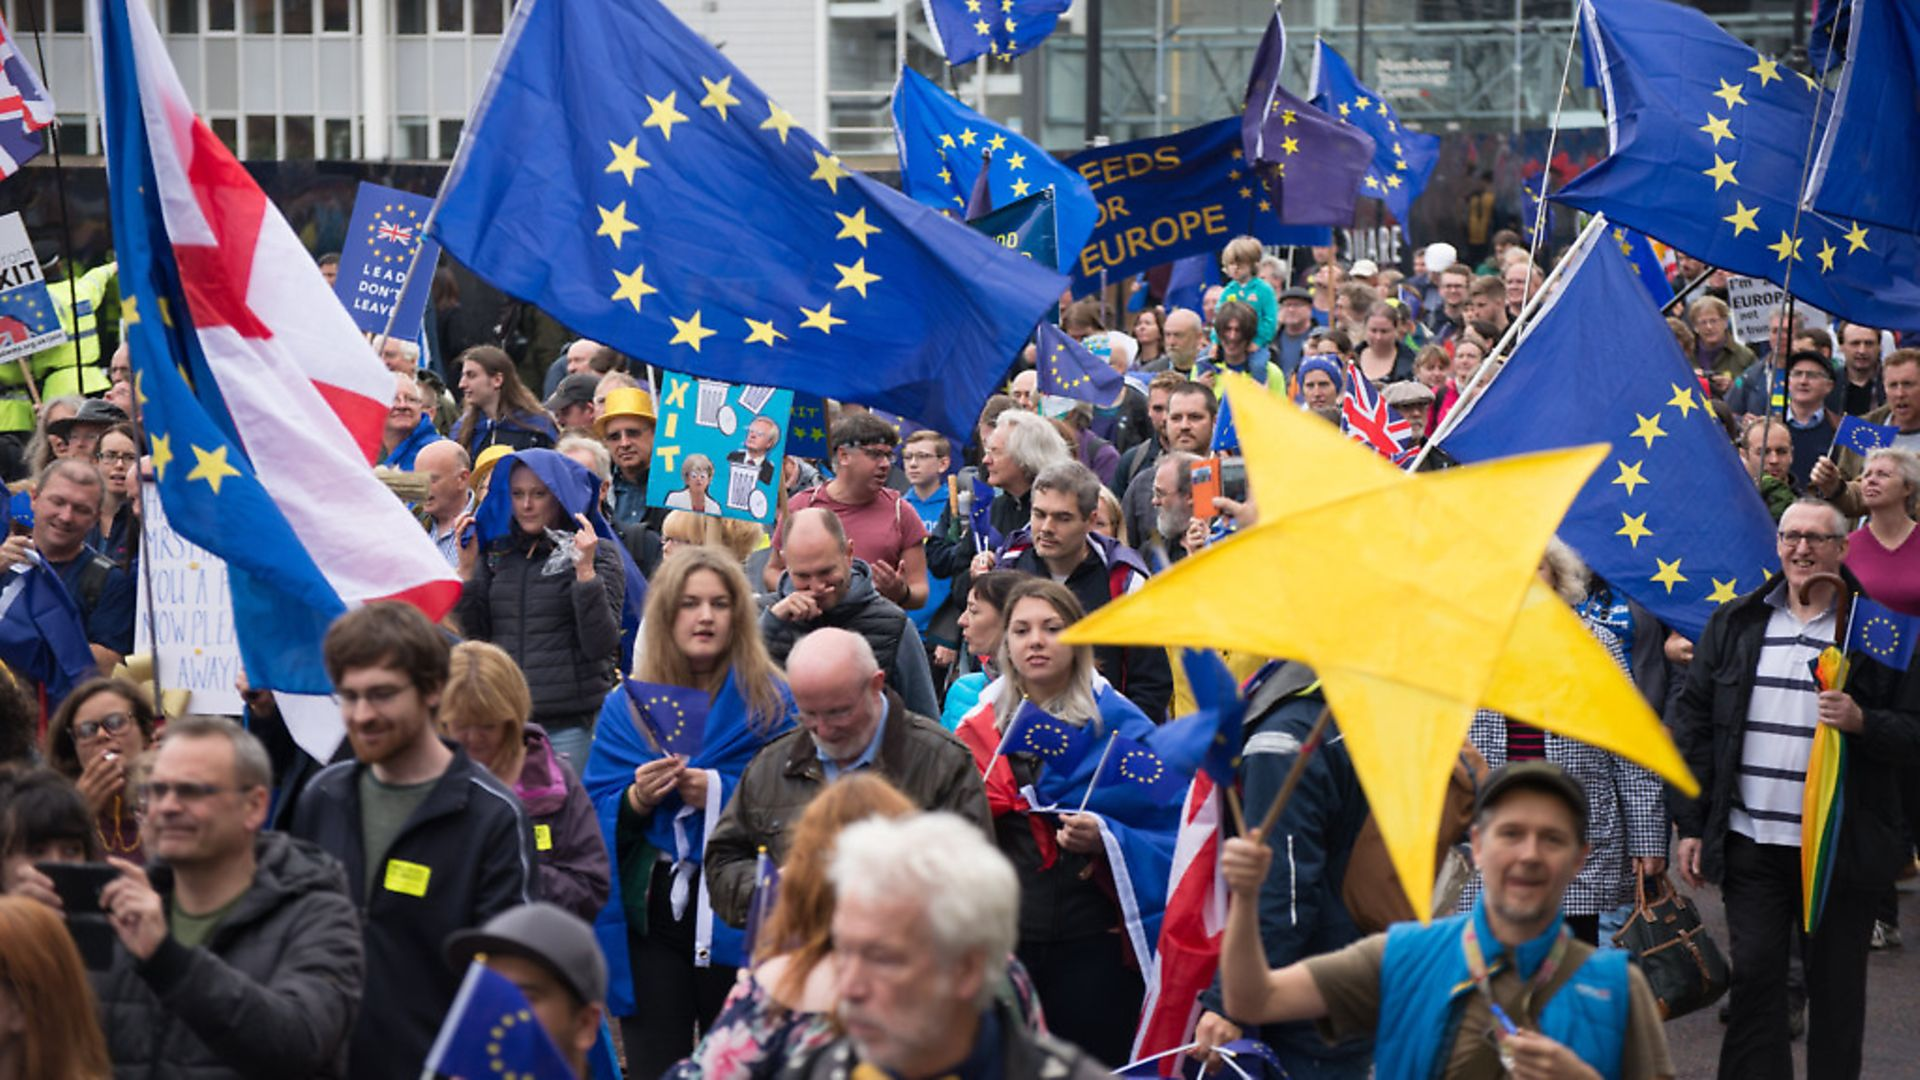 A 'Stop Brexit' protest in Manchester in 2017. Photo by Jonathan Nicholson/NurPhoto/Sipa USA. - Credit: SIPA USA/PA Images